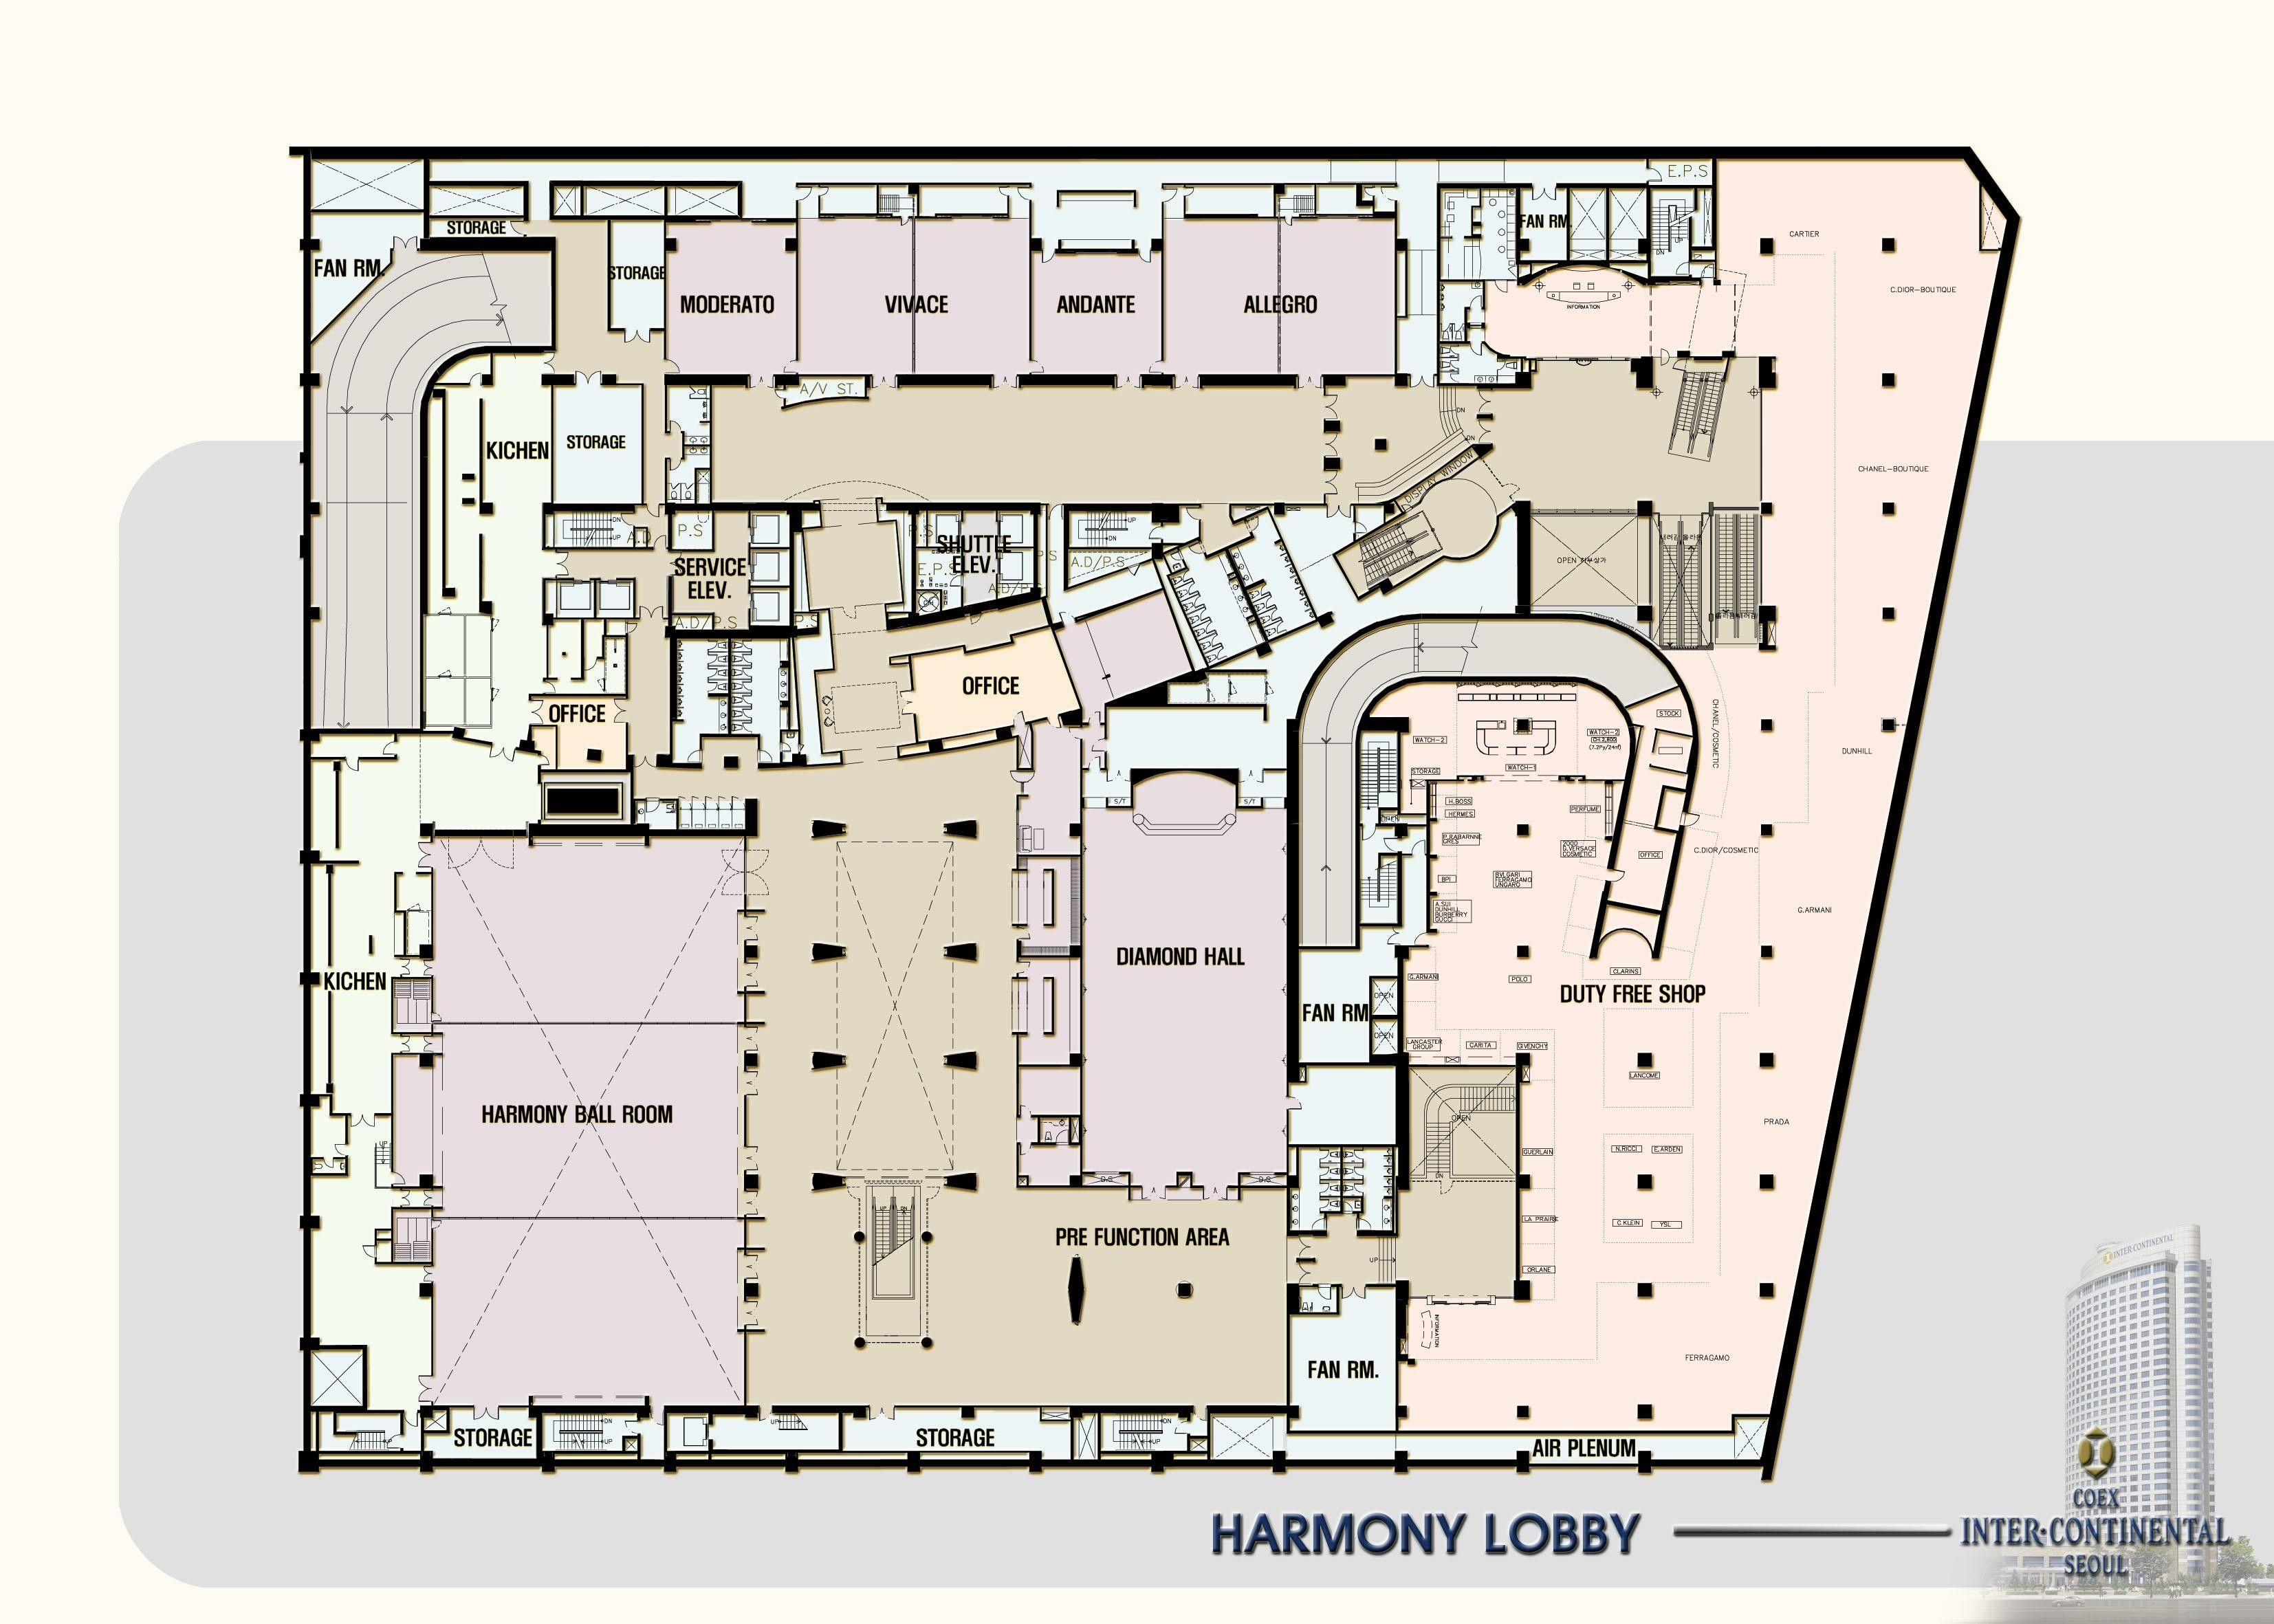 Hotel Lobby Floor Plan - Google Search